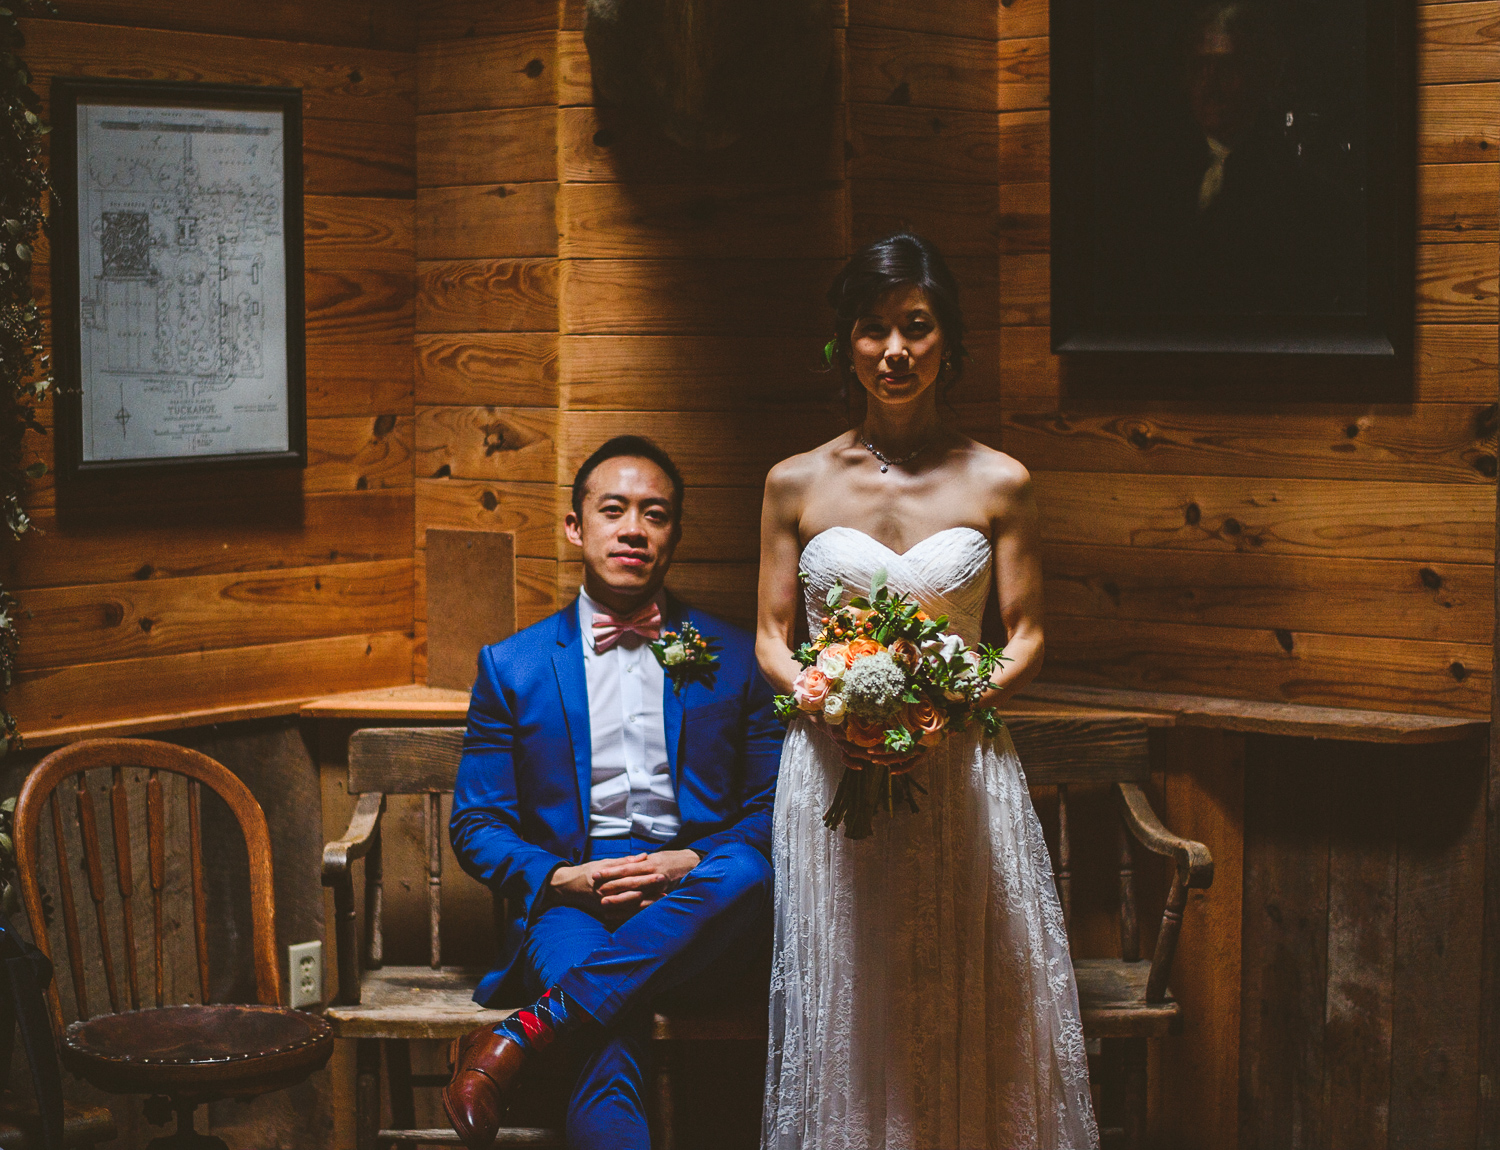 017 - portrait of bride and groom.jpg